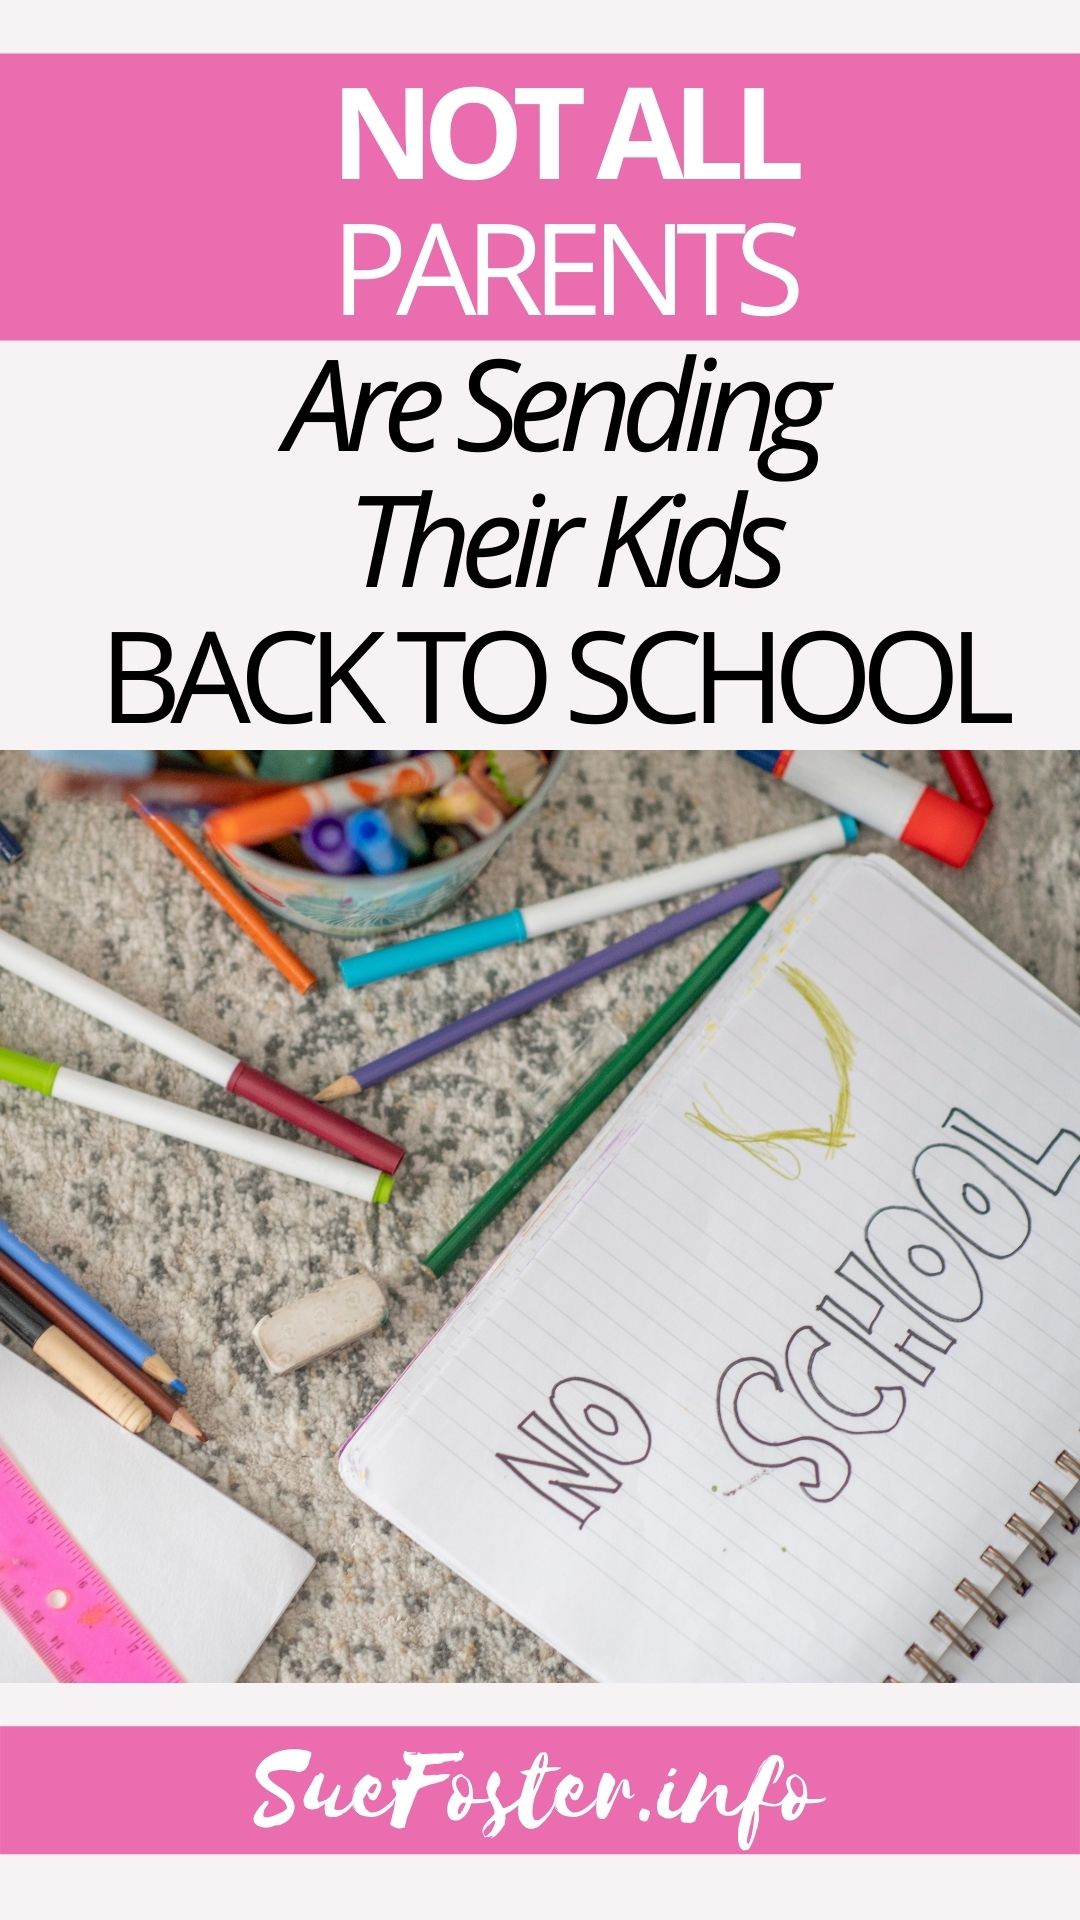 Back to school is looming, however, this time schools are having to remove any Covid safety measures they had in place. Not all parents are 'excited' about sending their children in, as the media portrays.